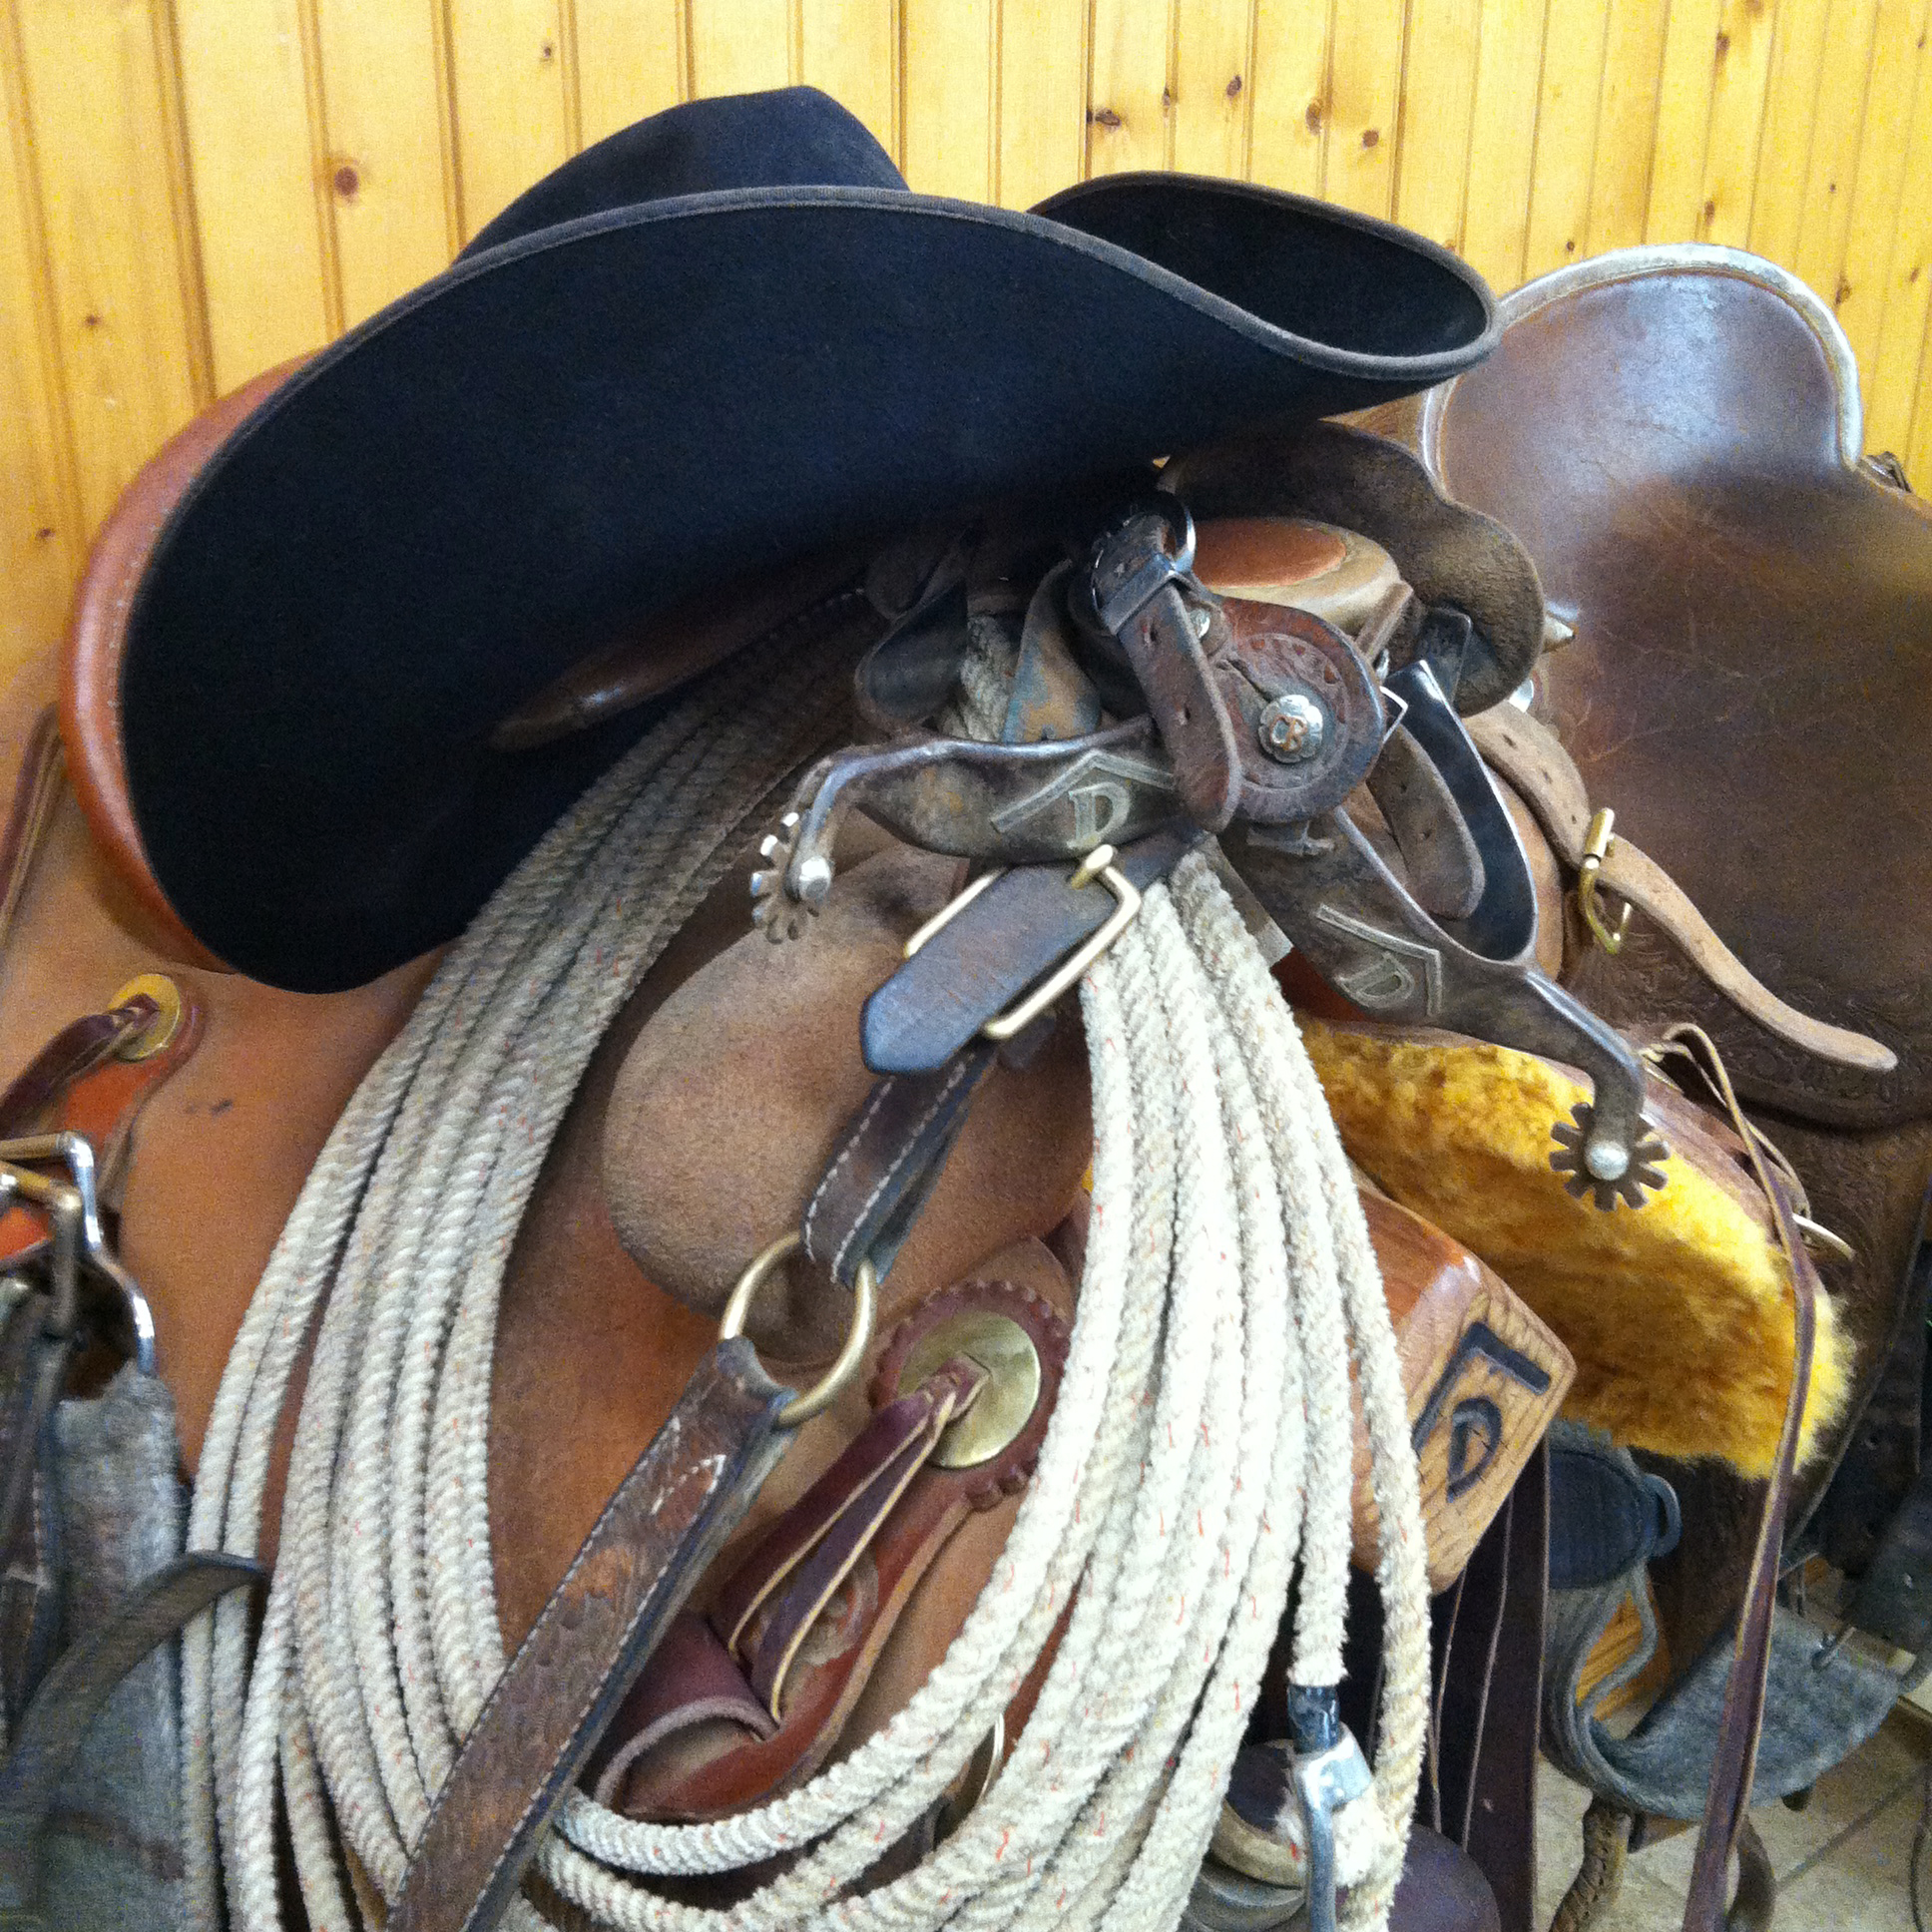 Spurs and Saddle